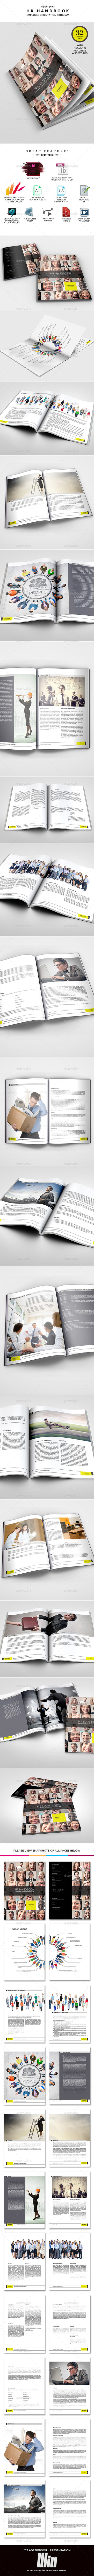 HR and Employee Handbook - Miscellaneous Print Templates